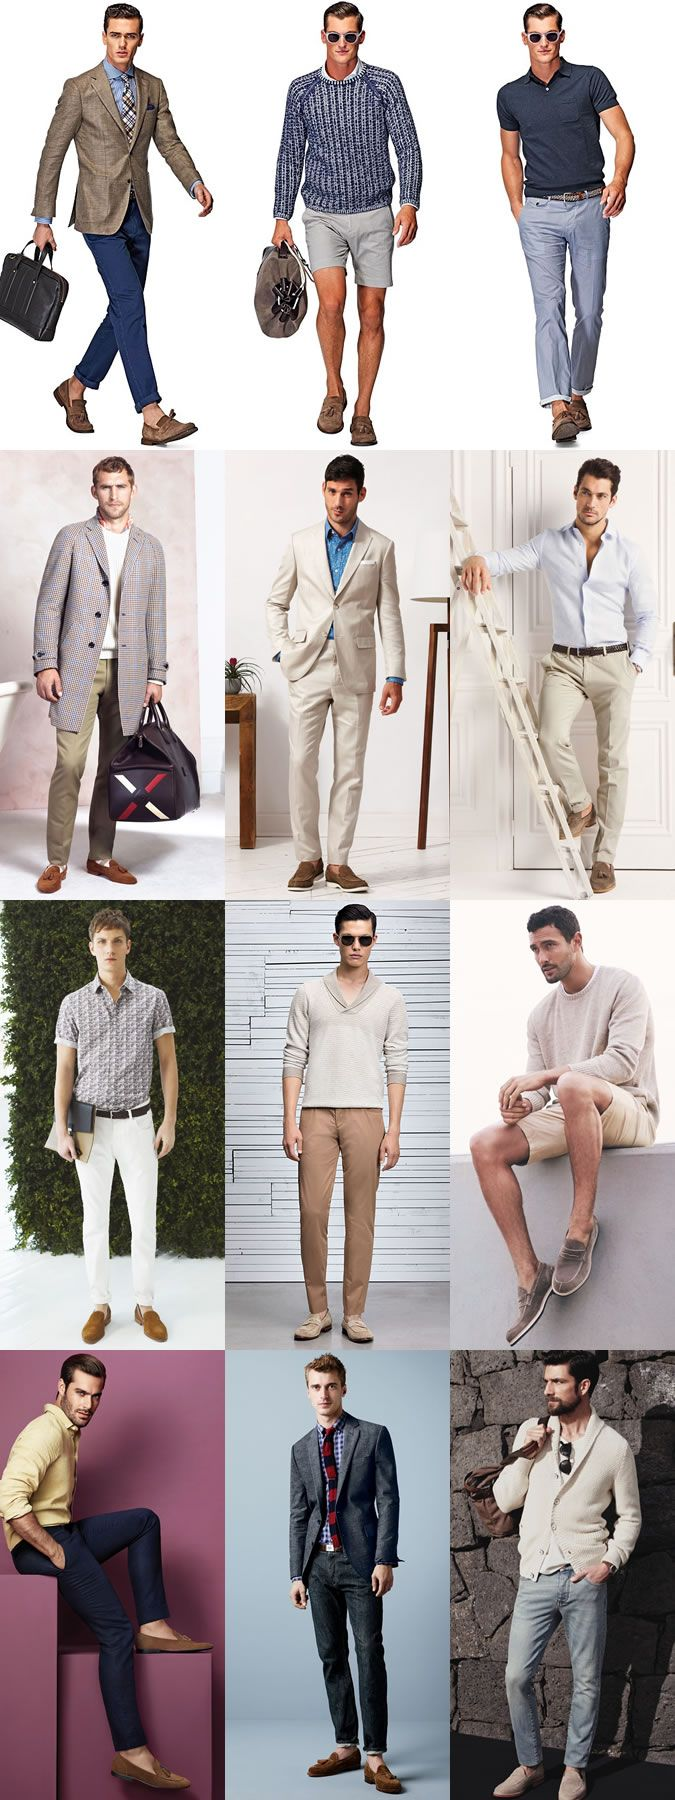 Men's Suede Loafers Outfit Inspiration Lookbook